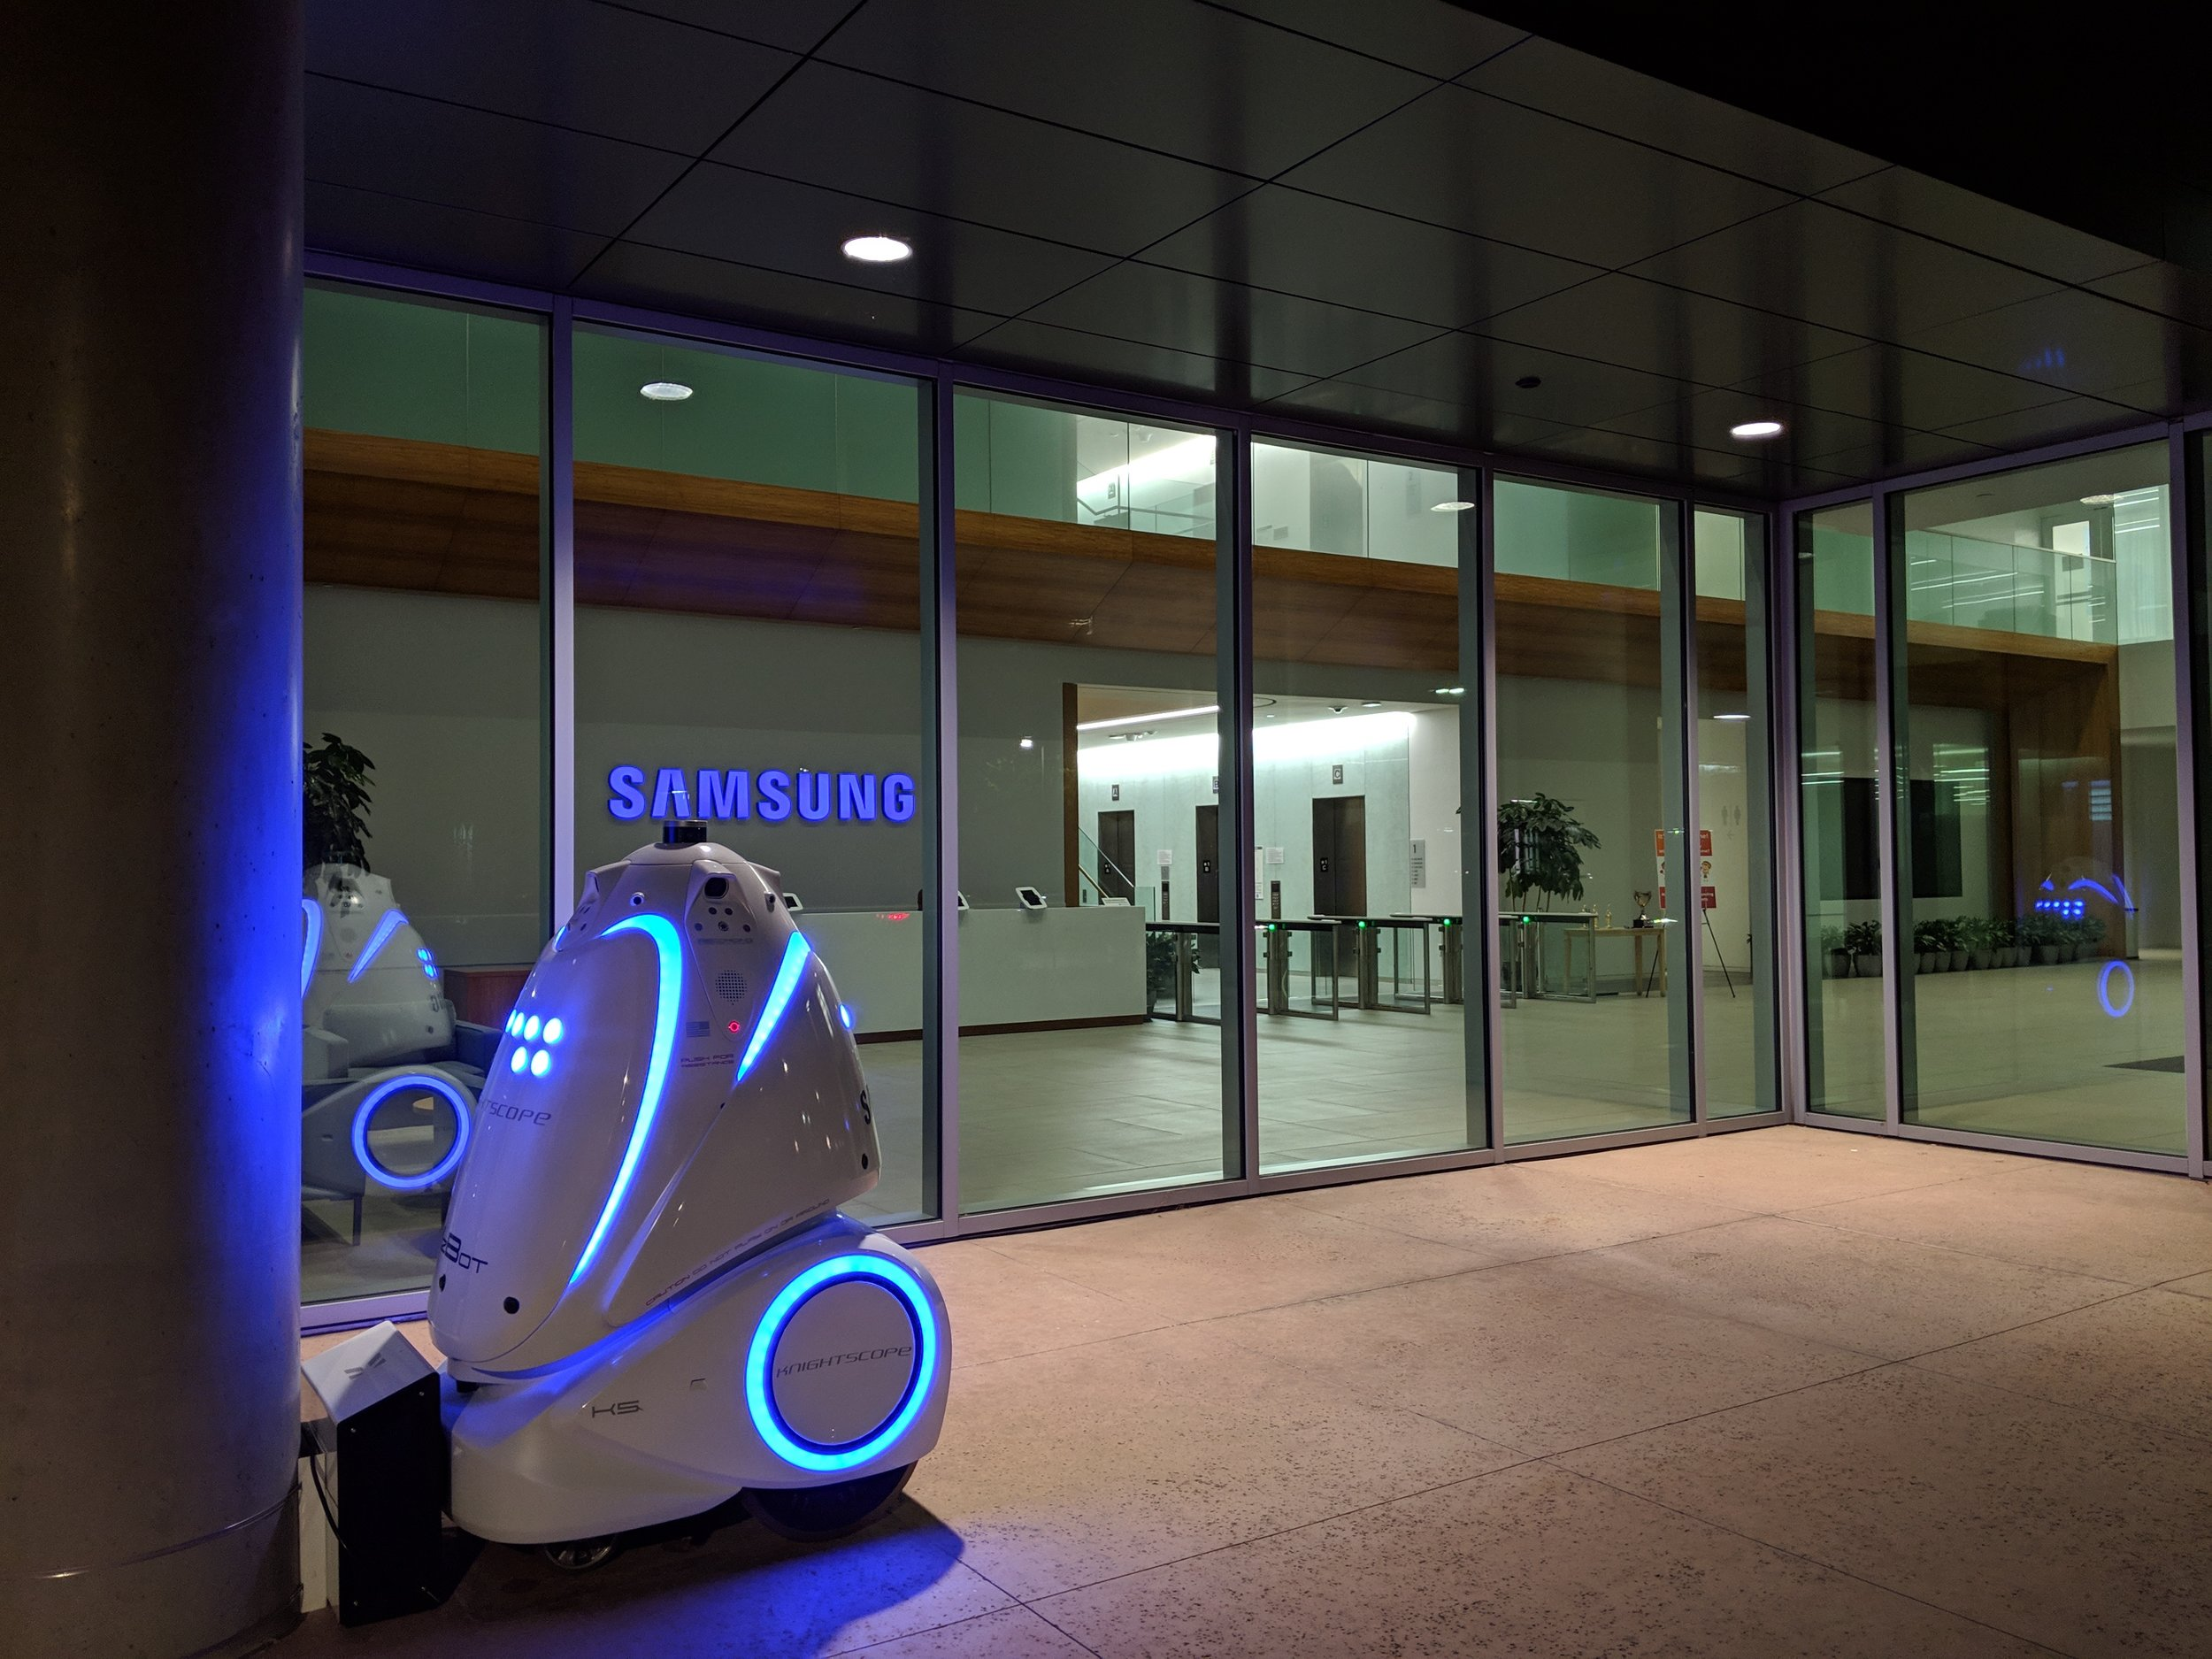 ABOVE: Knightscope's All-New 4th Generation K5 Security Robot Deployed at Samsung